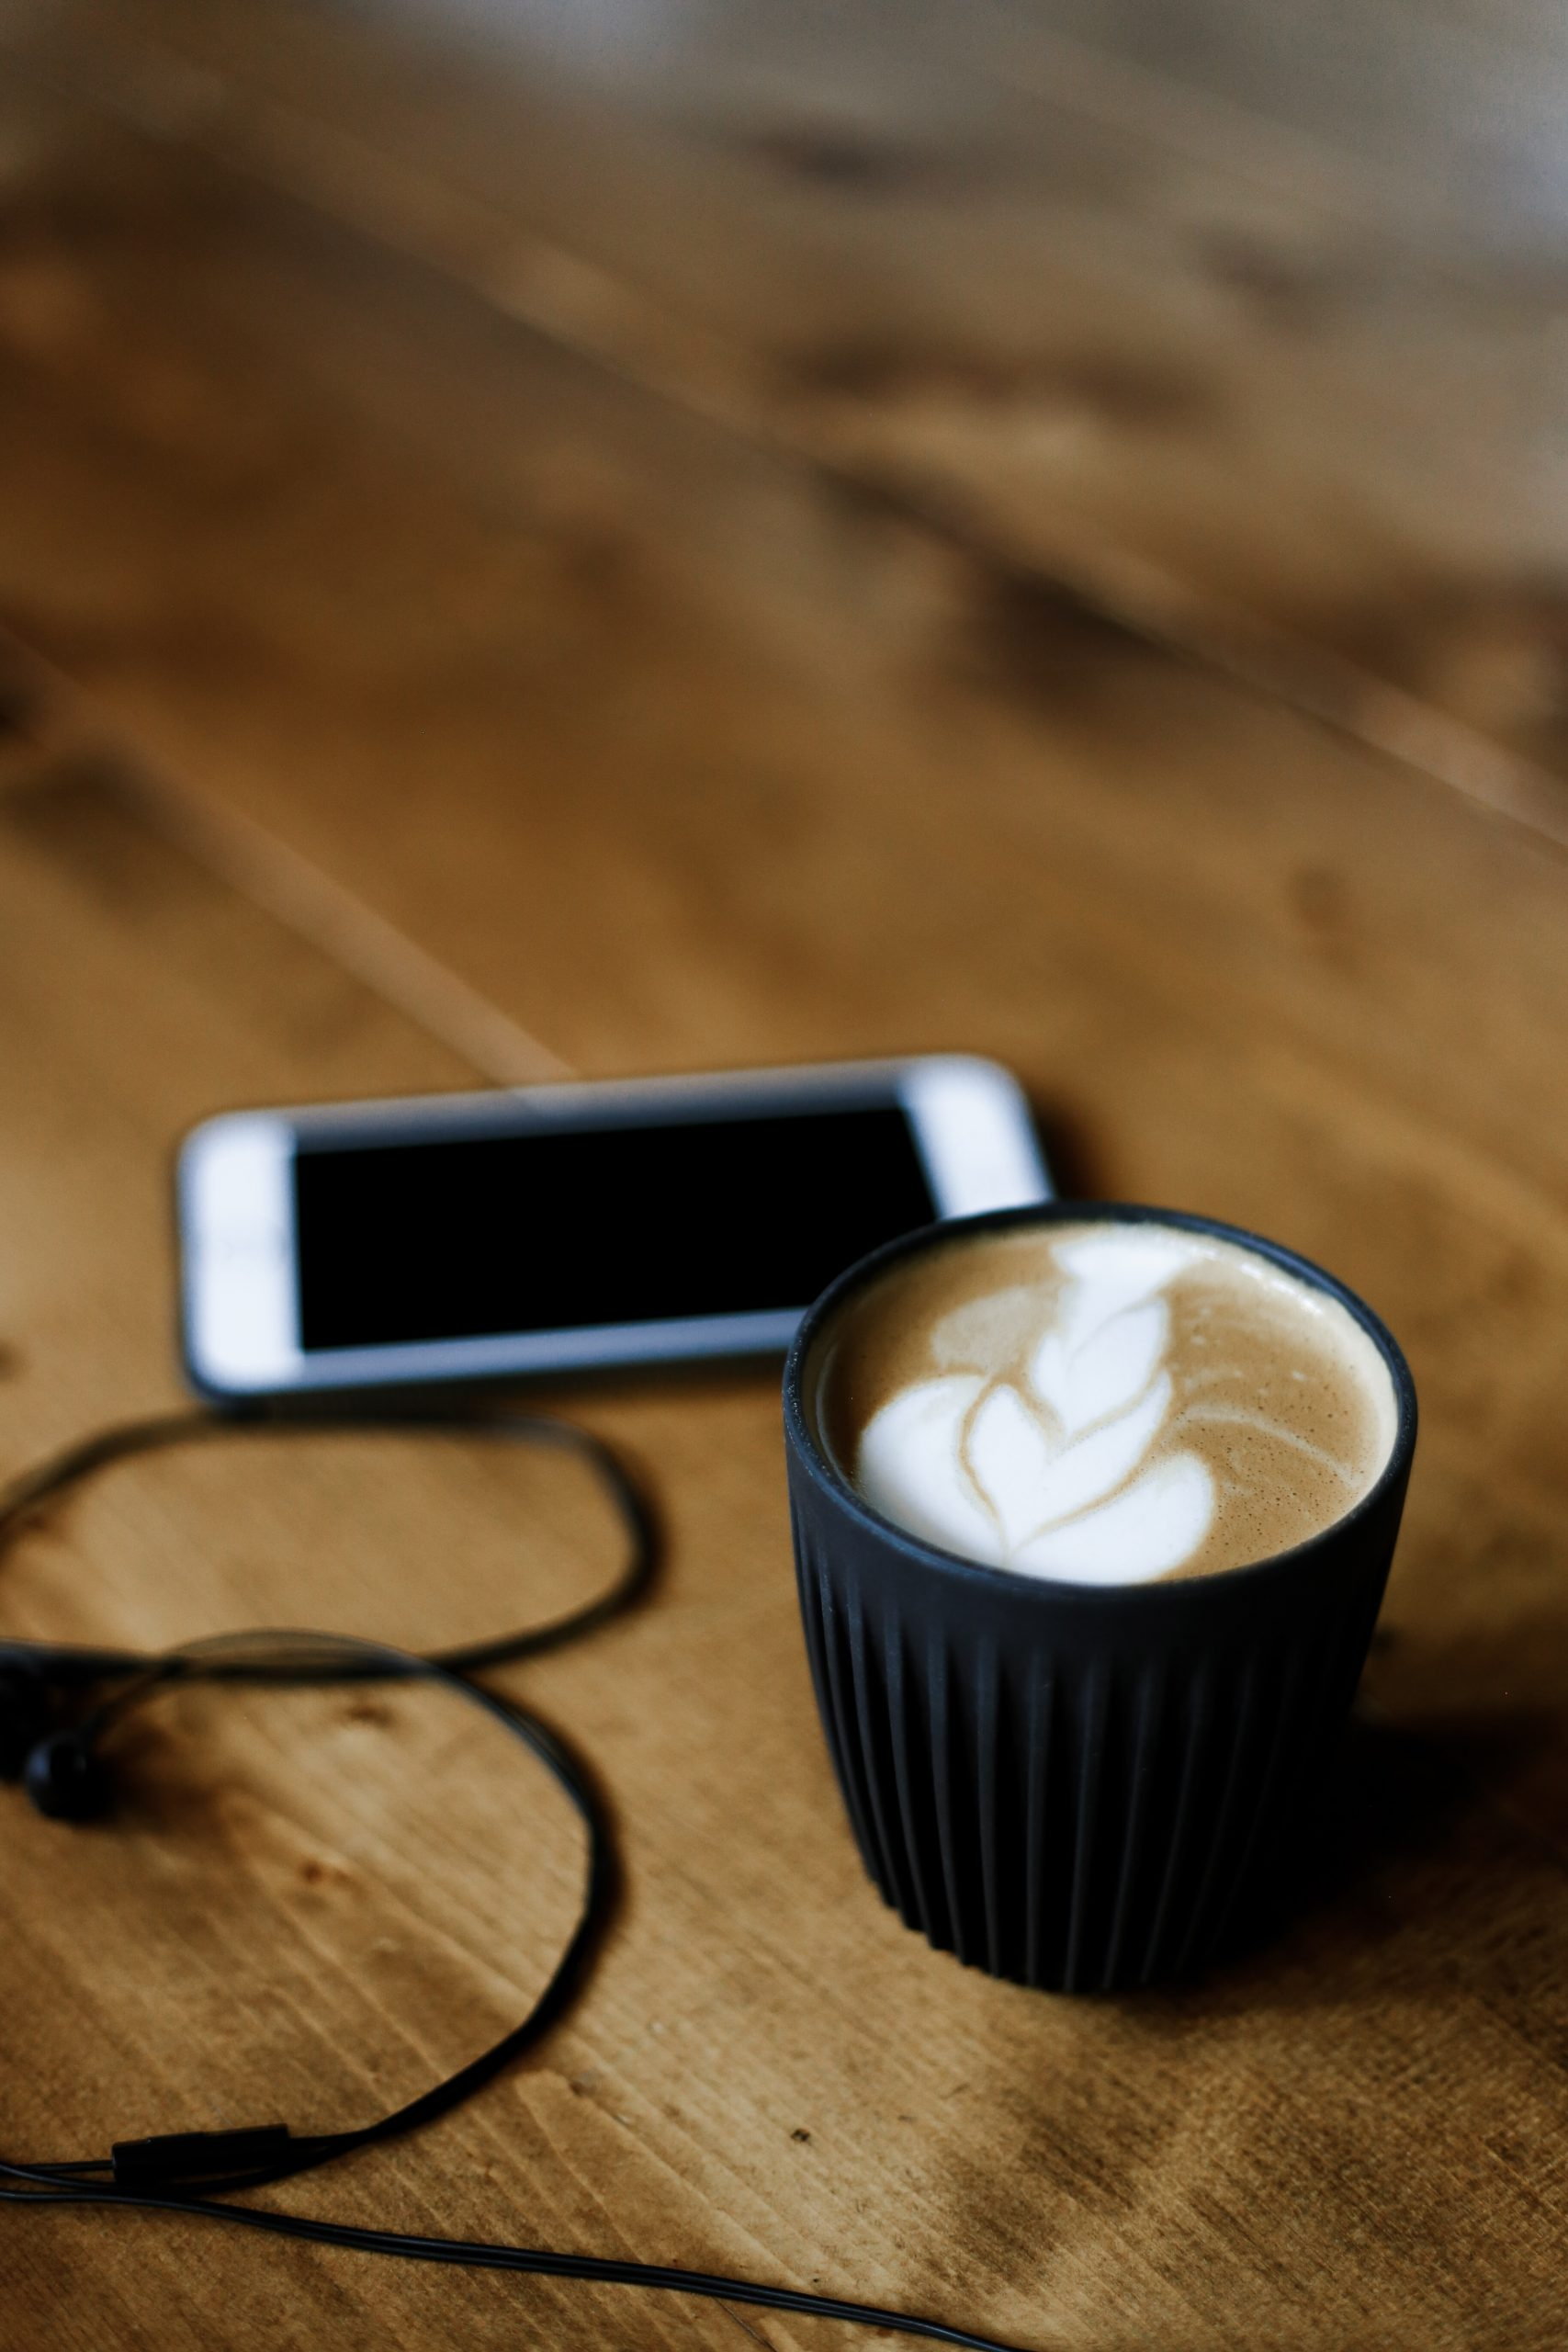 coffee and mobile